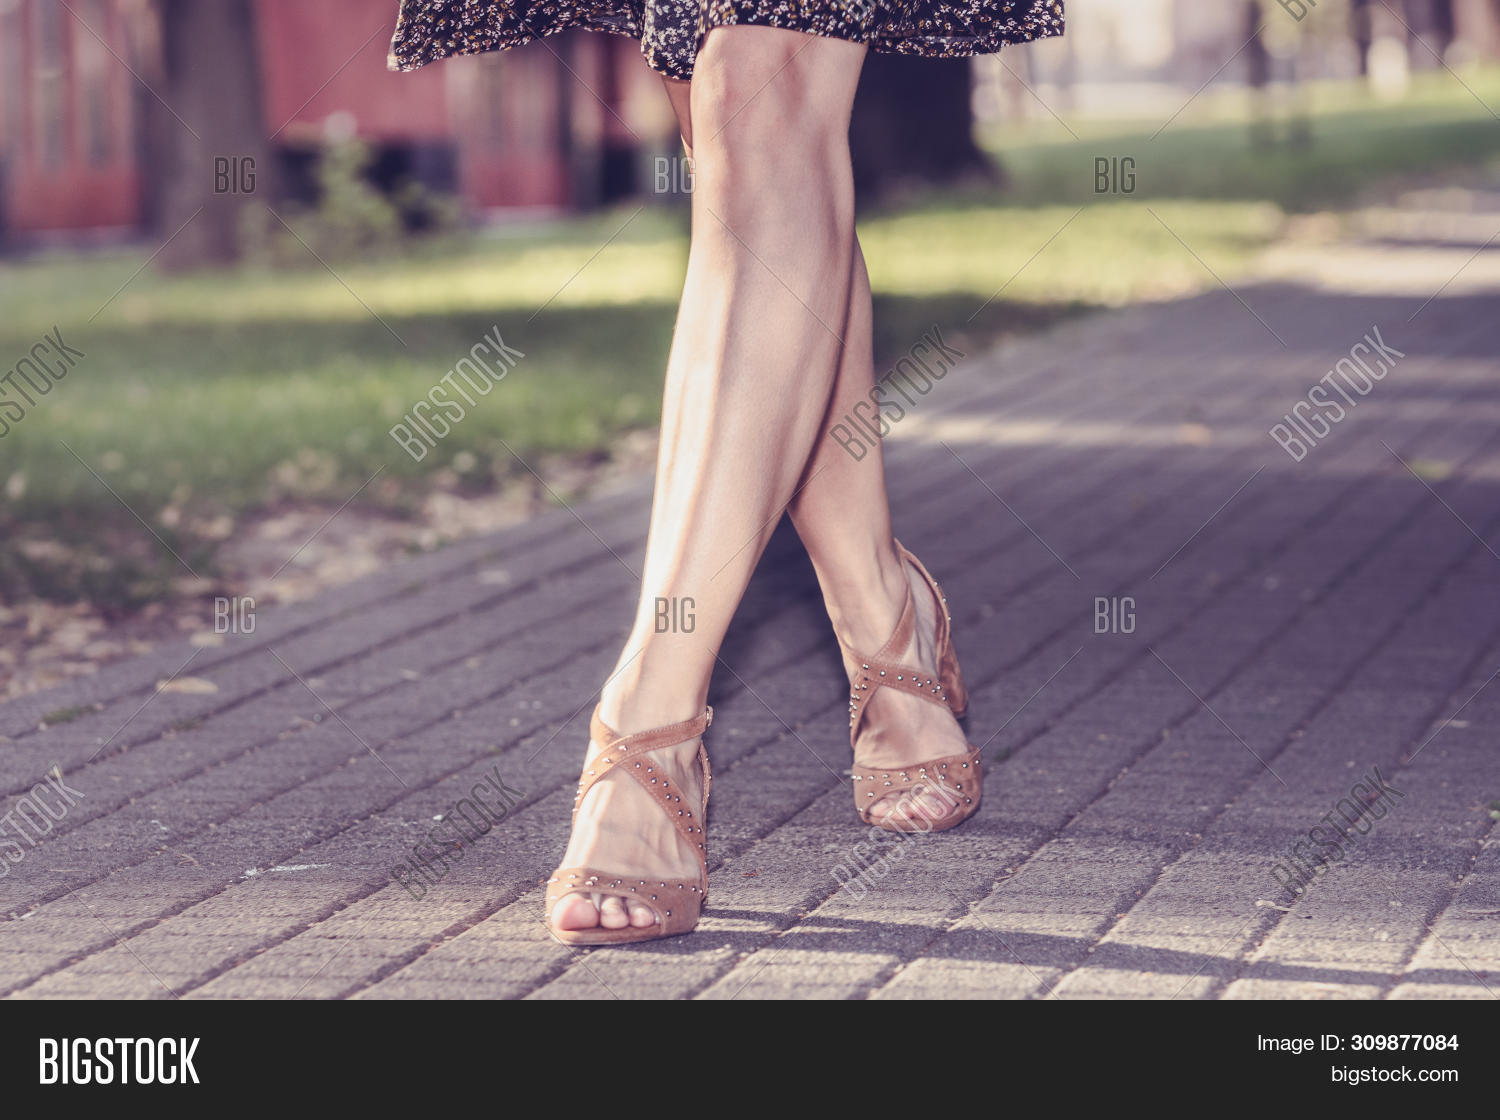 active,activity,alone,attitude,attractive,beautiful,city,clothes,cool,direction,dress,fashionable,feet,female,foot,front,girl,grass,hurry,lady,leaf,leg,leggings,leisure,lifestyle,loneliness,motion,outdoor,park,path,people,person,road,sexy,shoe,sidewalk,smooth,sun,sunlight,sunny,walk,walkaway,walker,walking,woman,women,yellow,young